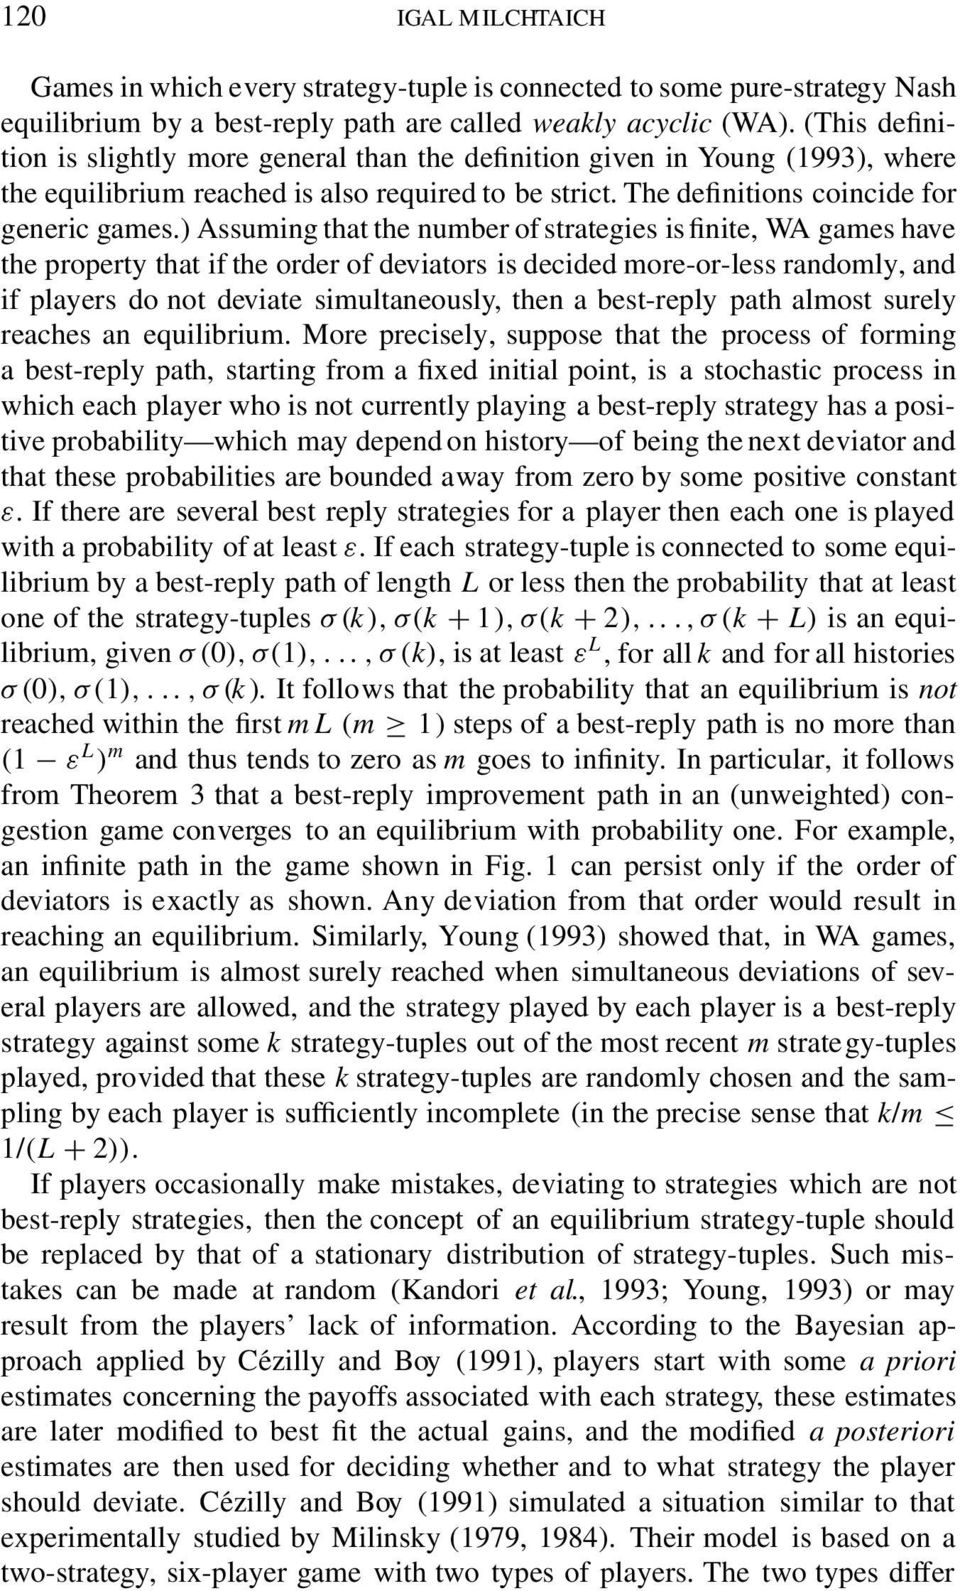 ) Assuming that the number of strategies is finite, WA games have the property that if the order of deviators is decided more-or-less randomly, and if players do not deviate simultaneously, then a